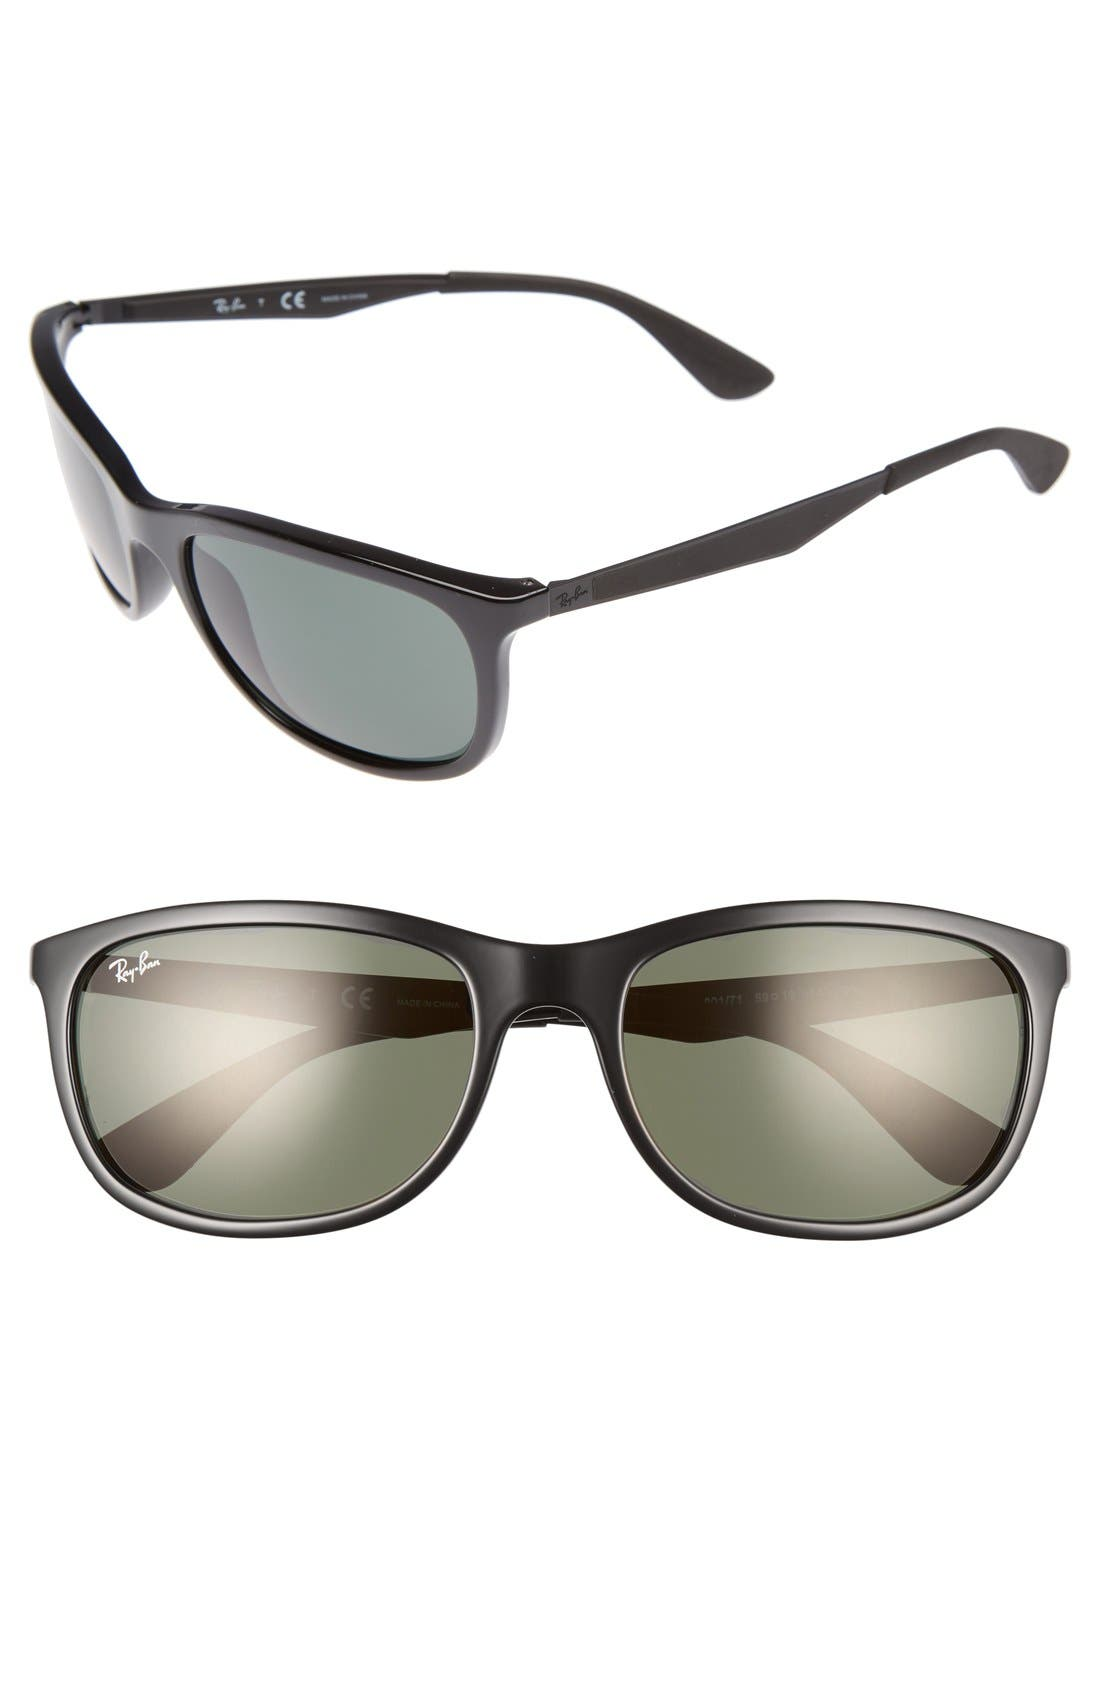 Active Lifestyle 59mm Rectangular Sunglasses,                         Main,                         color,